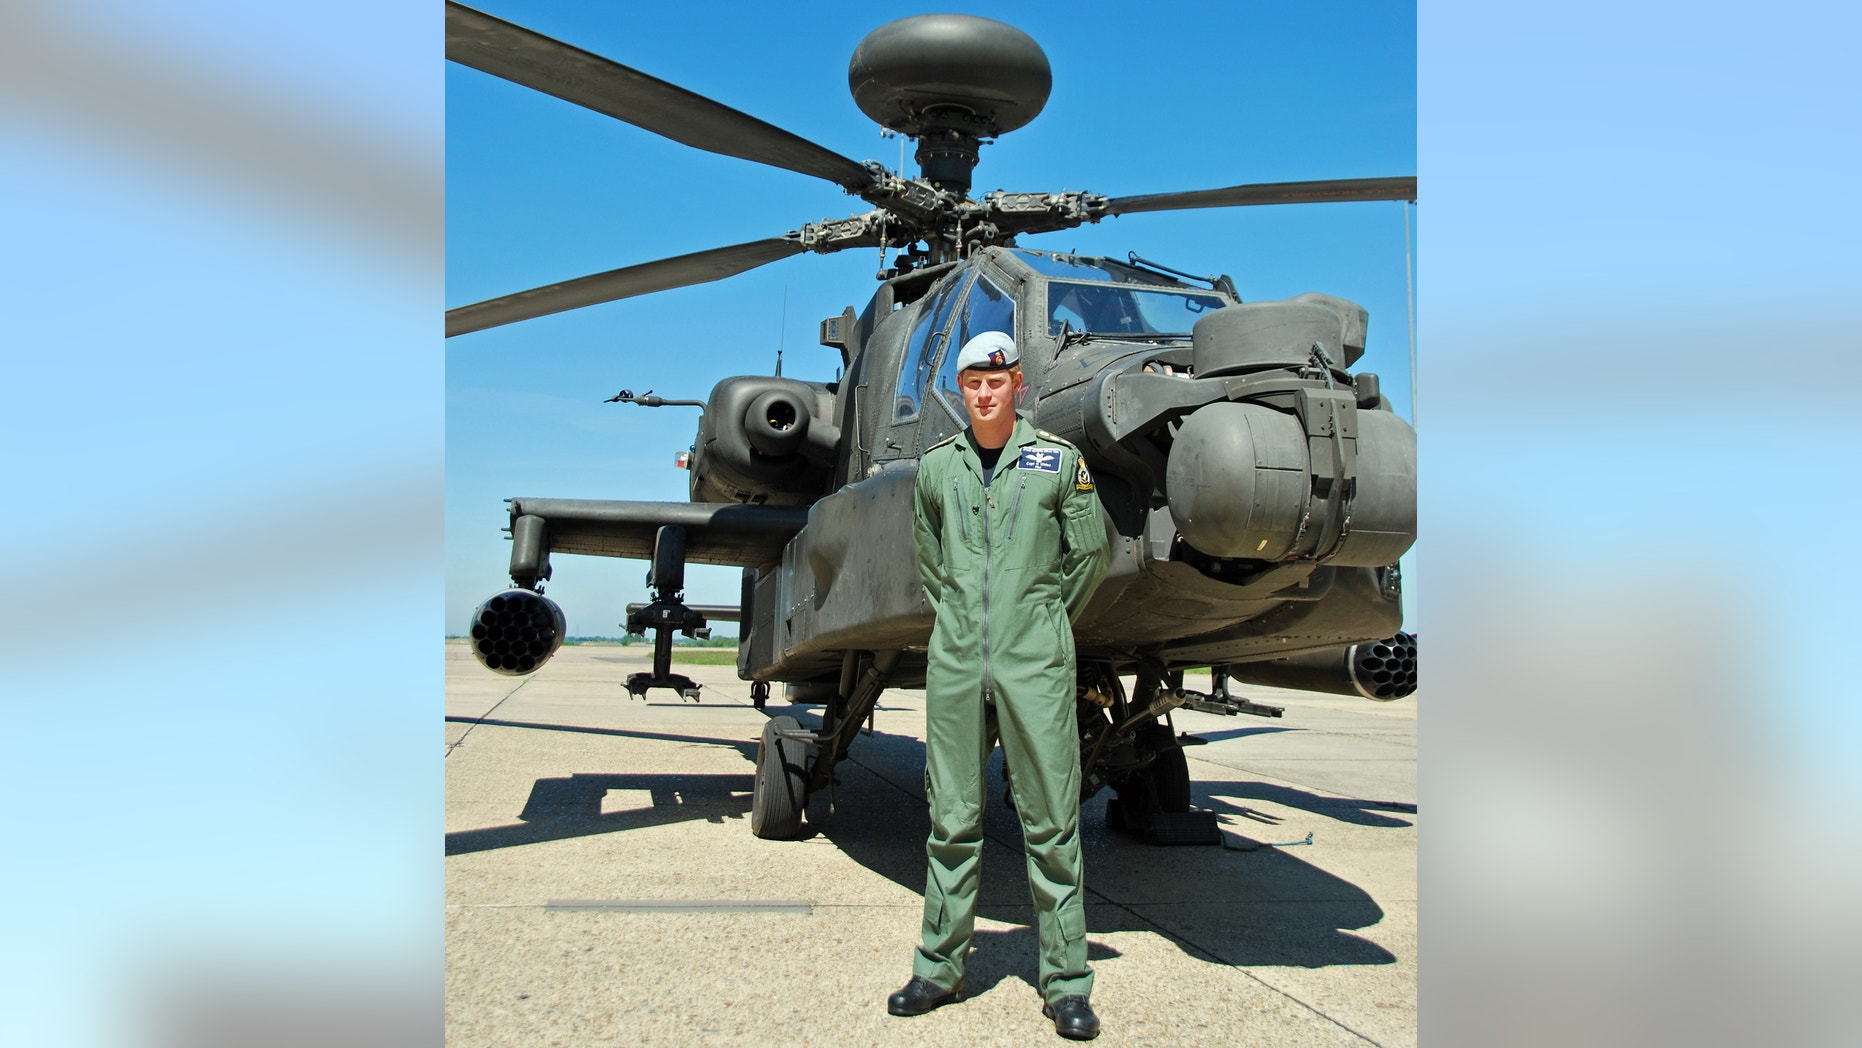 Photo released Friday July 5, 2013 shows Britain's Prince Harry posing in front of an Apache helicopter in an undisclosed location. Prince Harry has this week qualified as an Apache Aircraft Commander, the culmination of his training over the last three years.